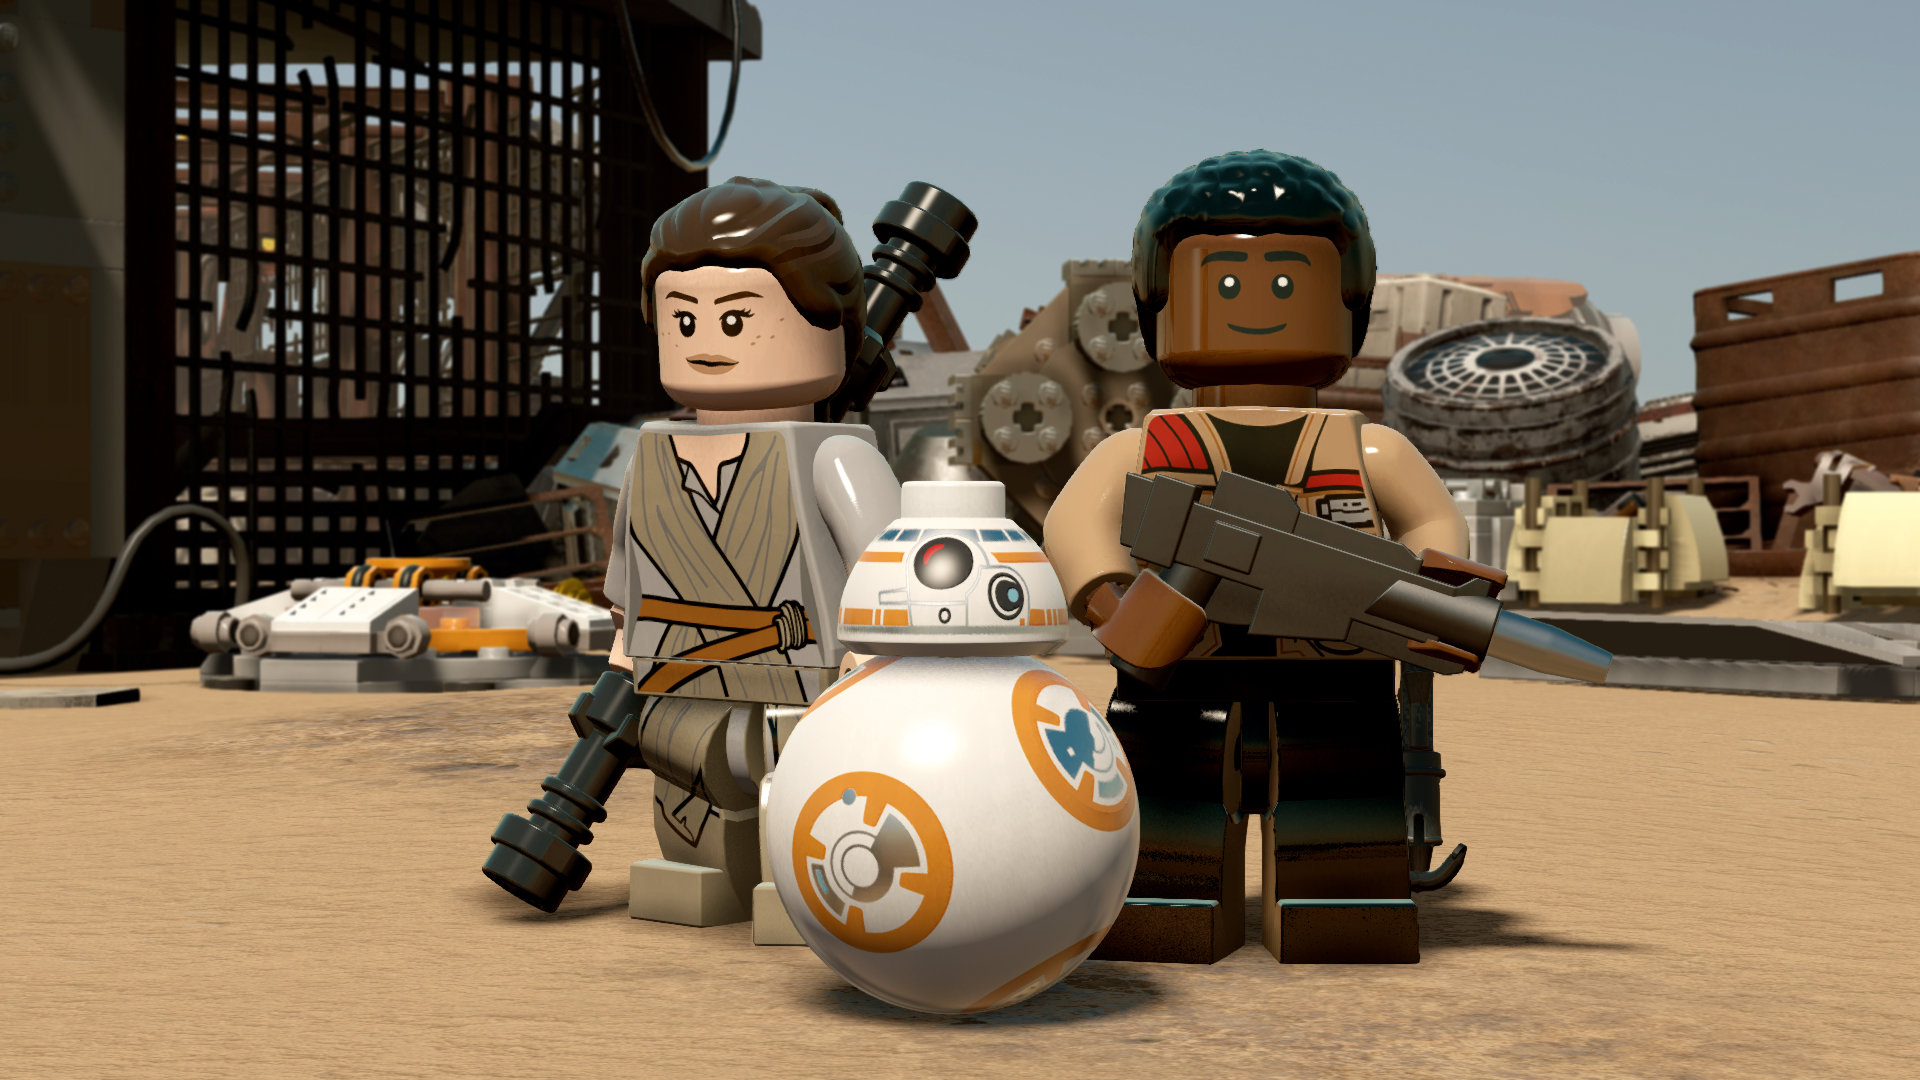 lego-star-wars-the-force-awakens-screen-